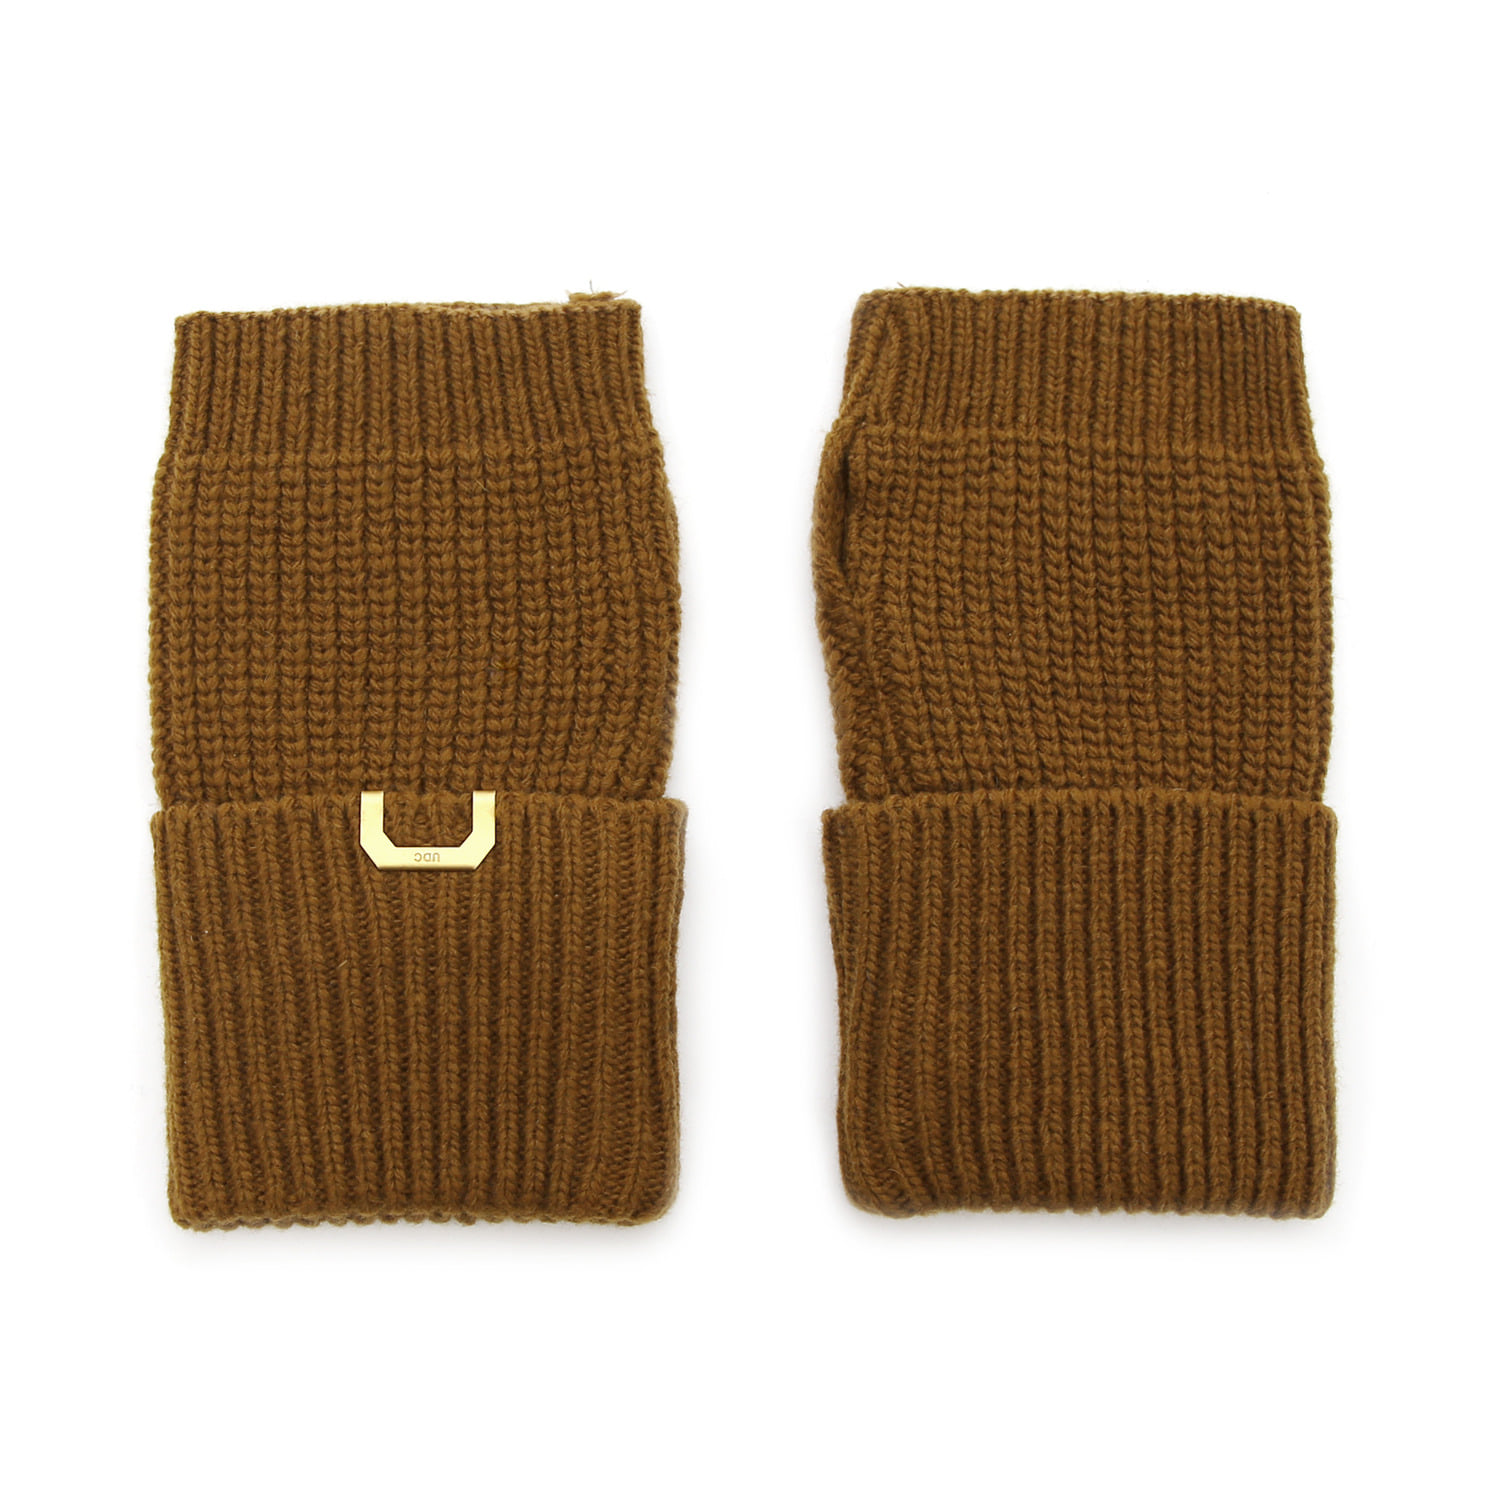 SLEEVE WARMER / LAMBS WOOL / GOLD OLIVE